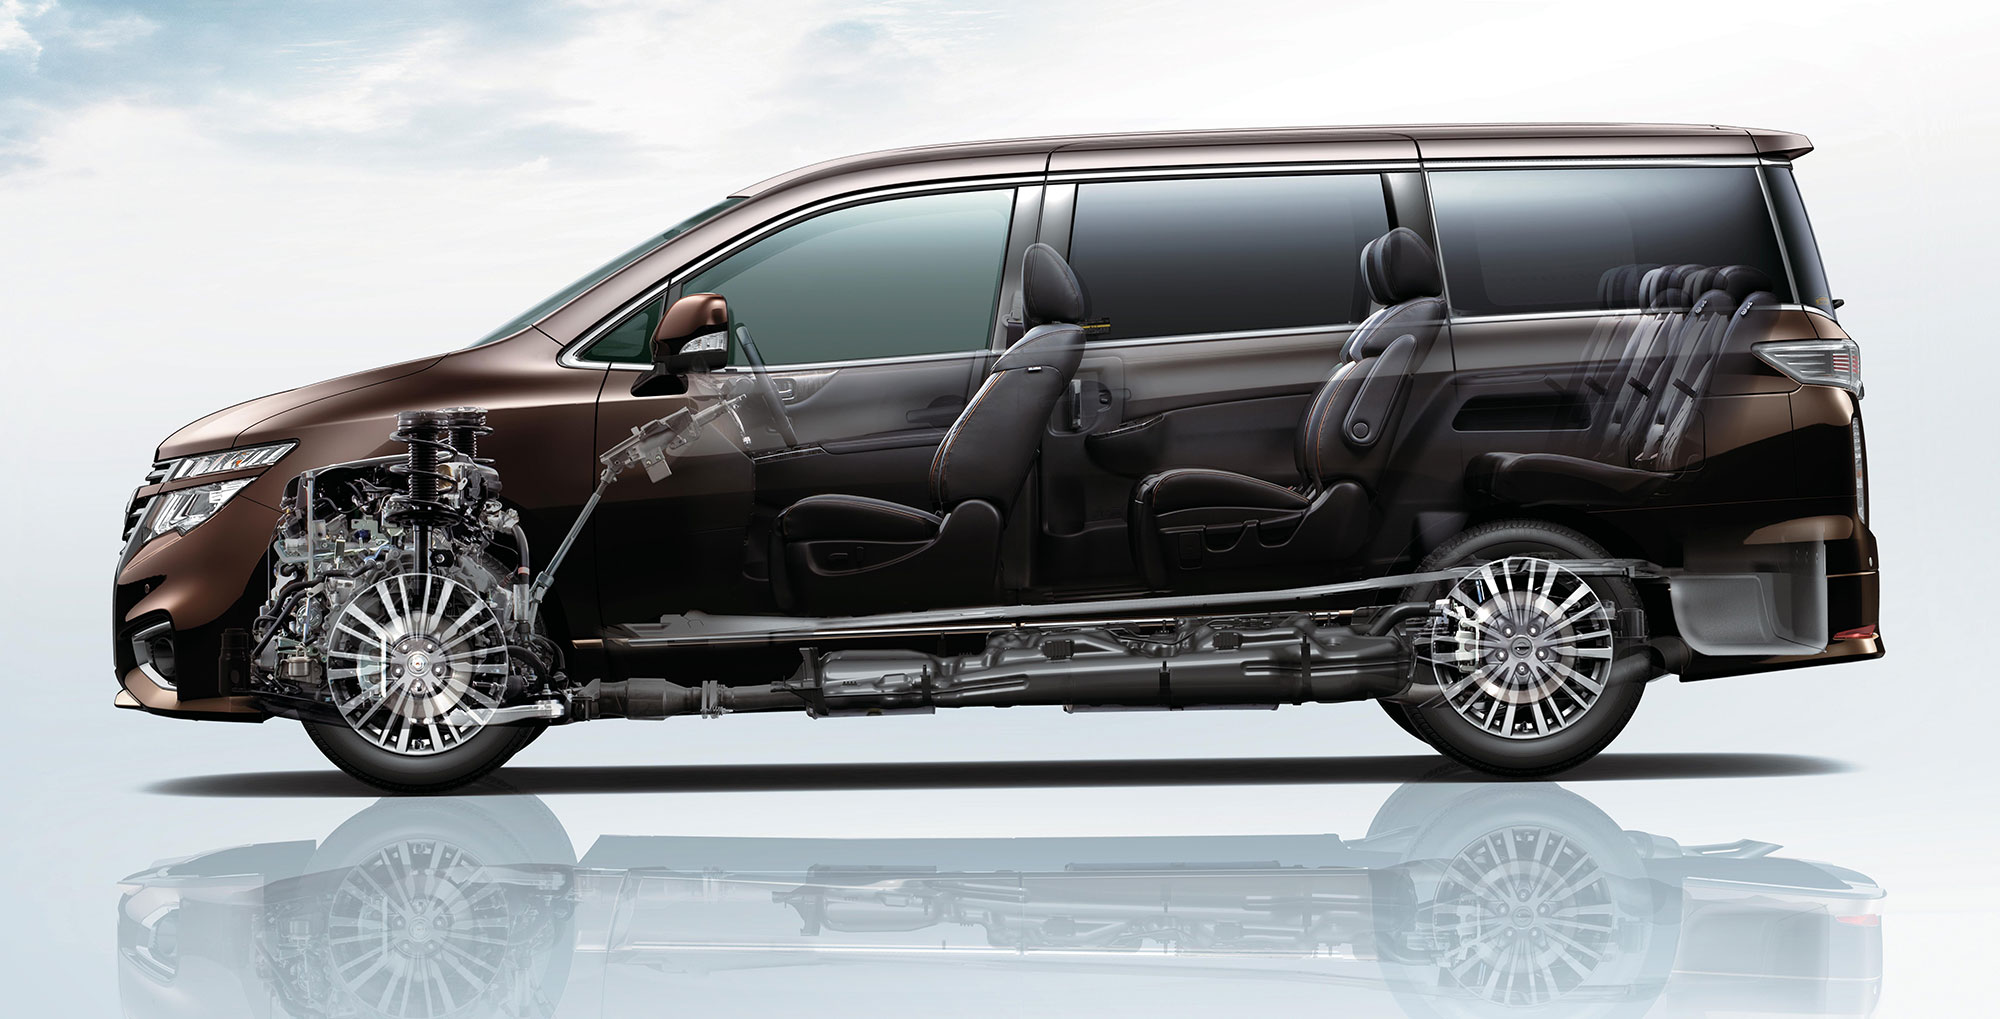 Nissan Elgrand Facelift Mpv Now In Malaysia Rm388k Image